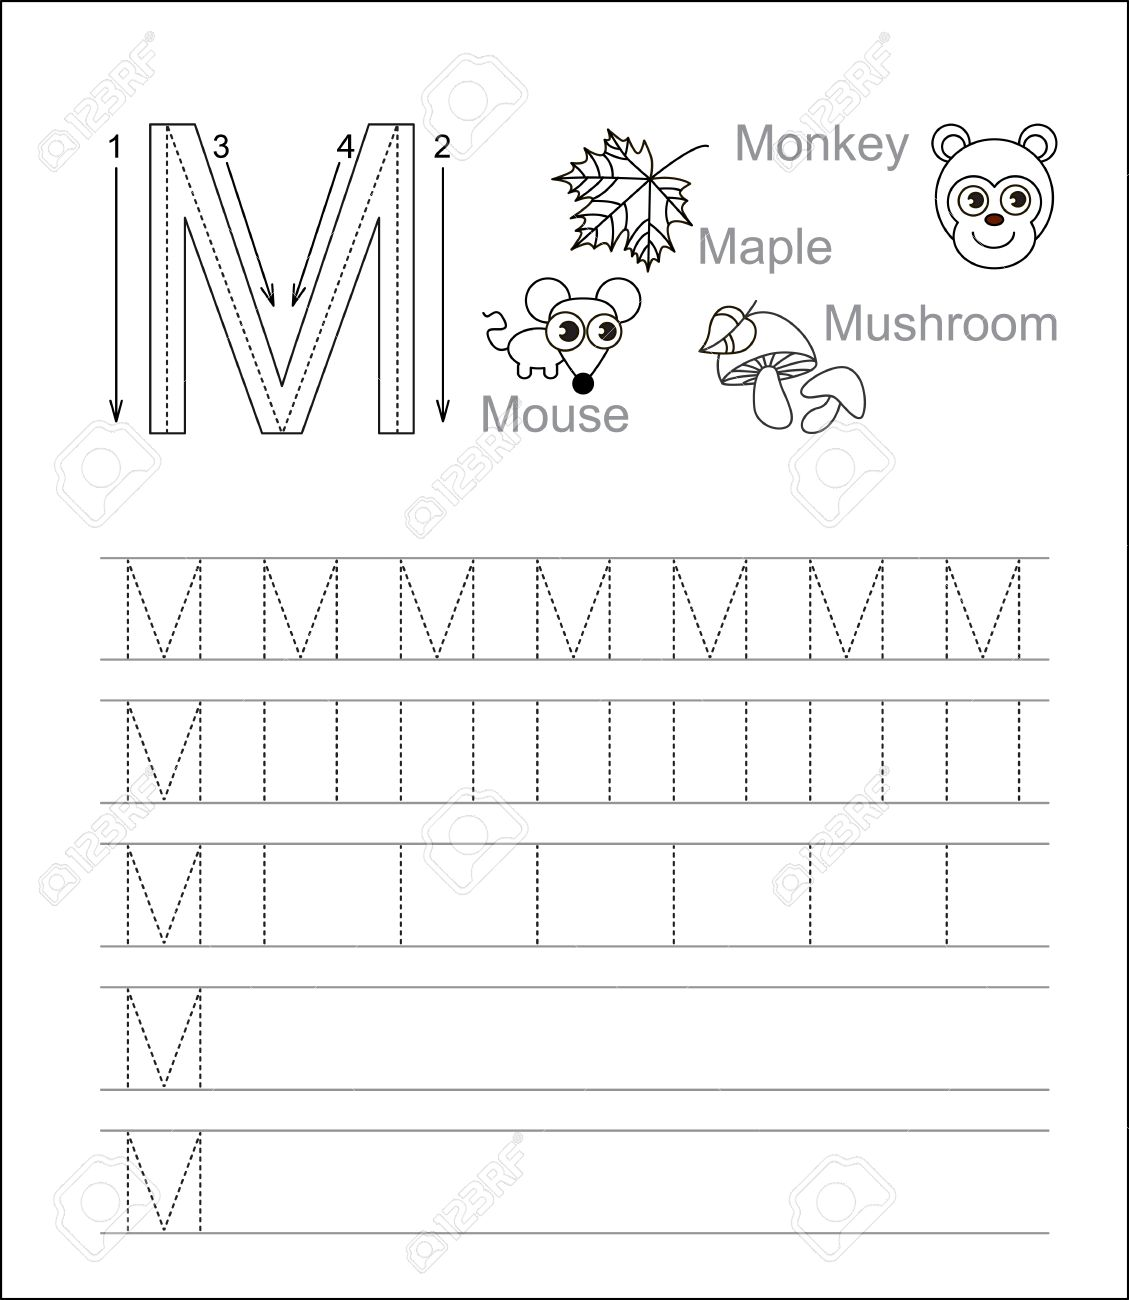 Free Worksheet Handwriting Tracing Worksheets cursive handwriting tracing worksheets letter p for pencil trace vector exercise illustrated alphabet learn worksheet m page to be colored